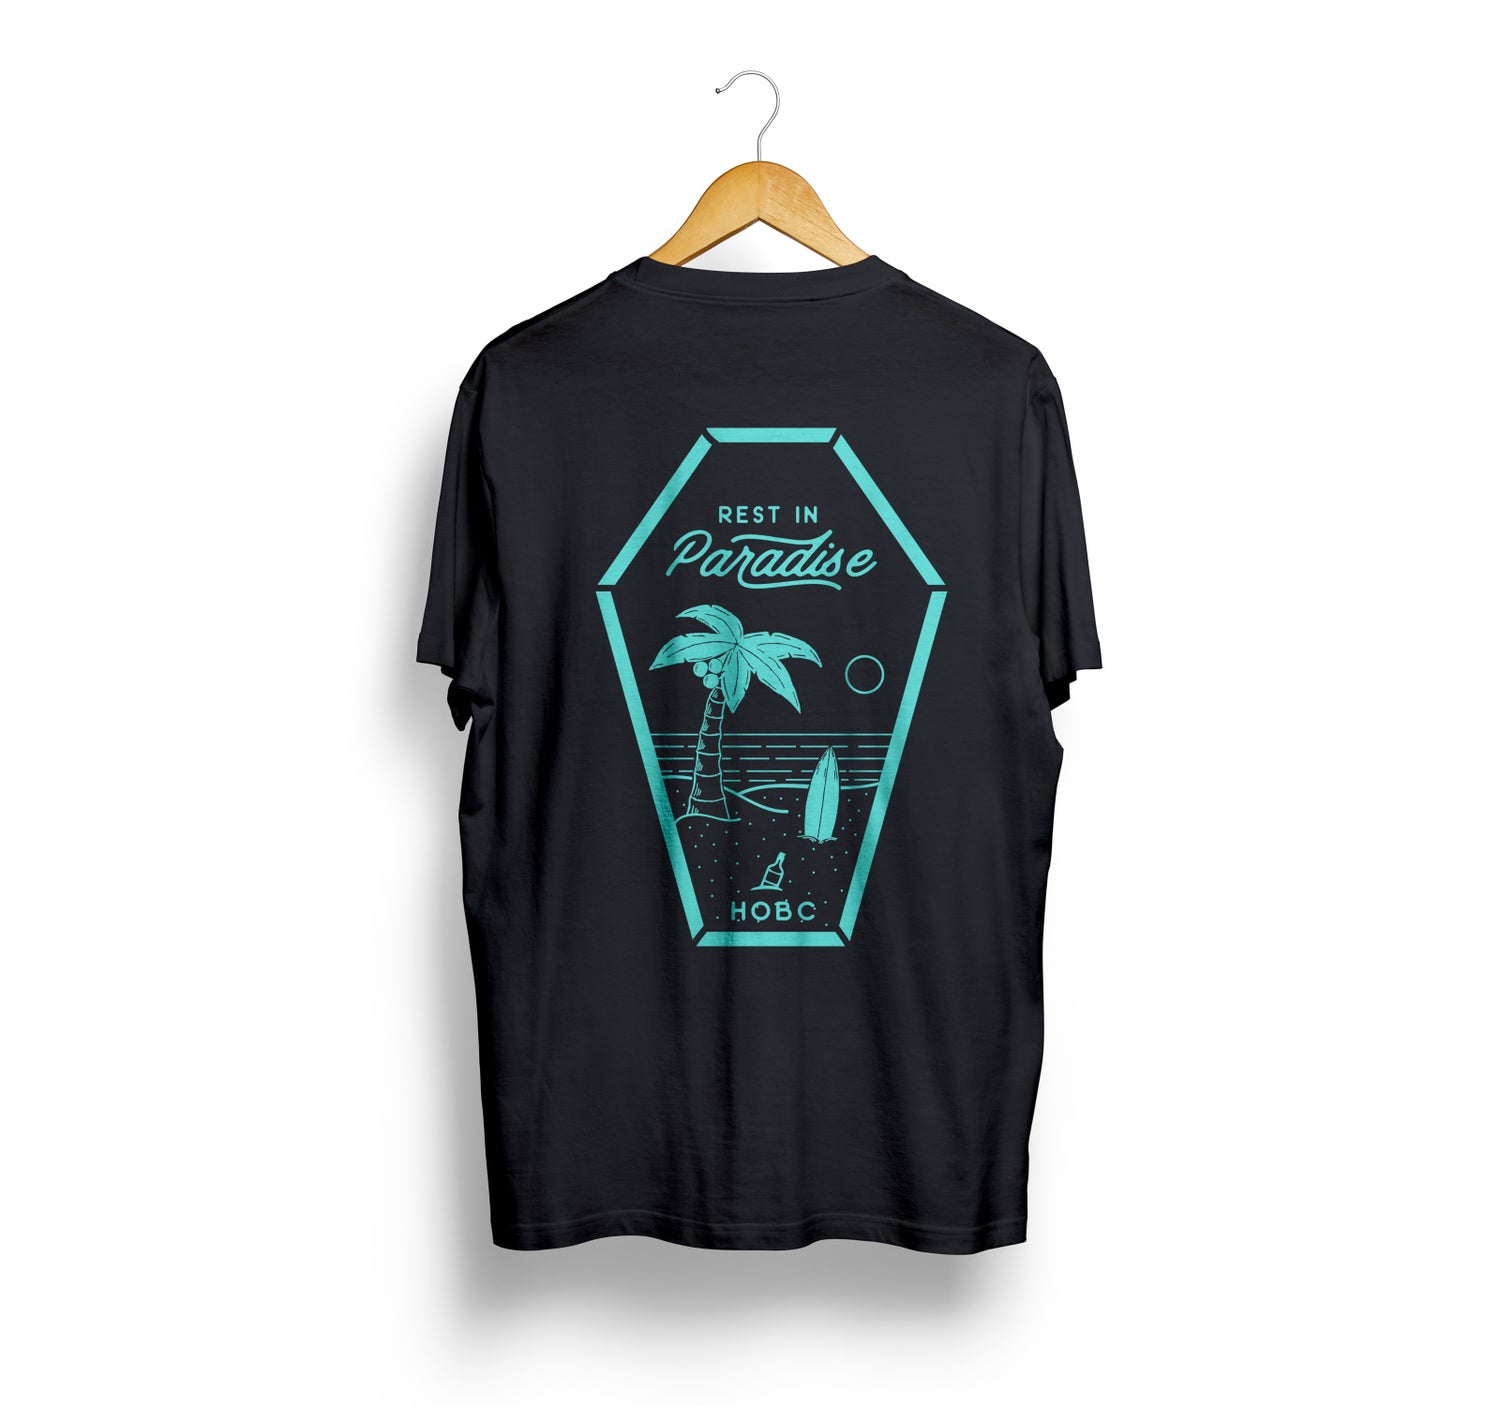 Image of RIP black/baby blue t-shirt